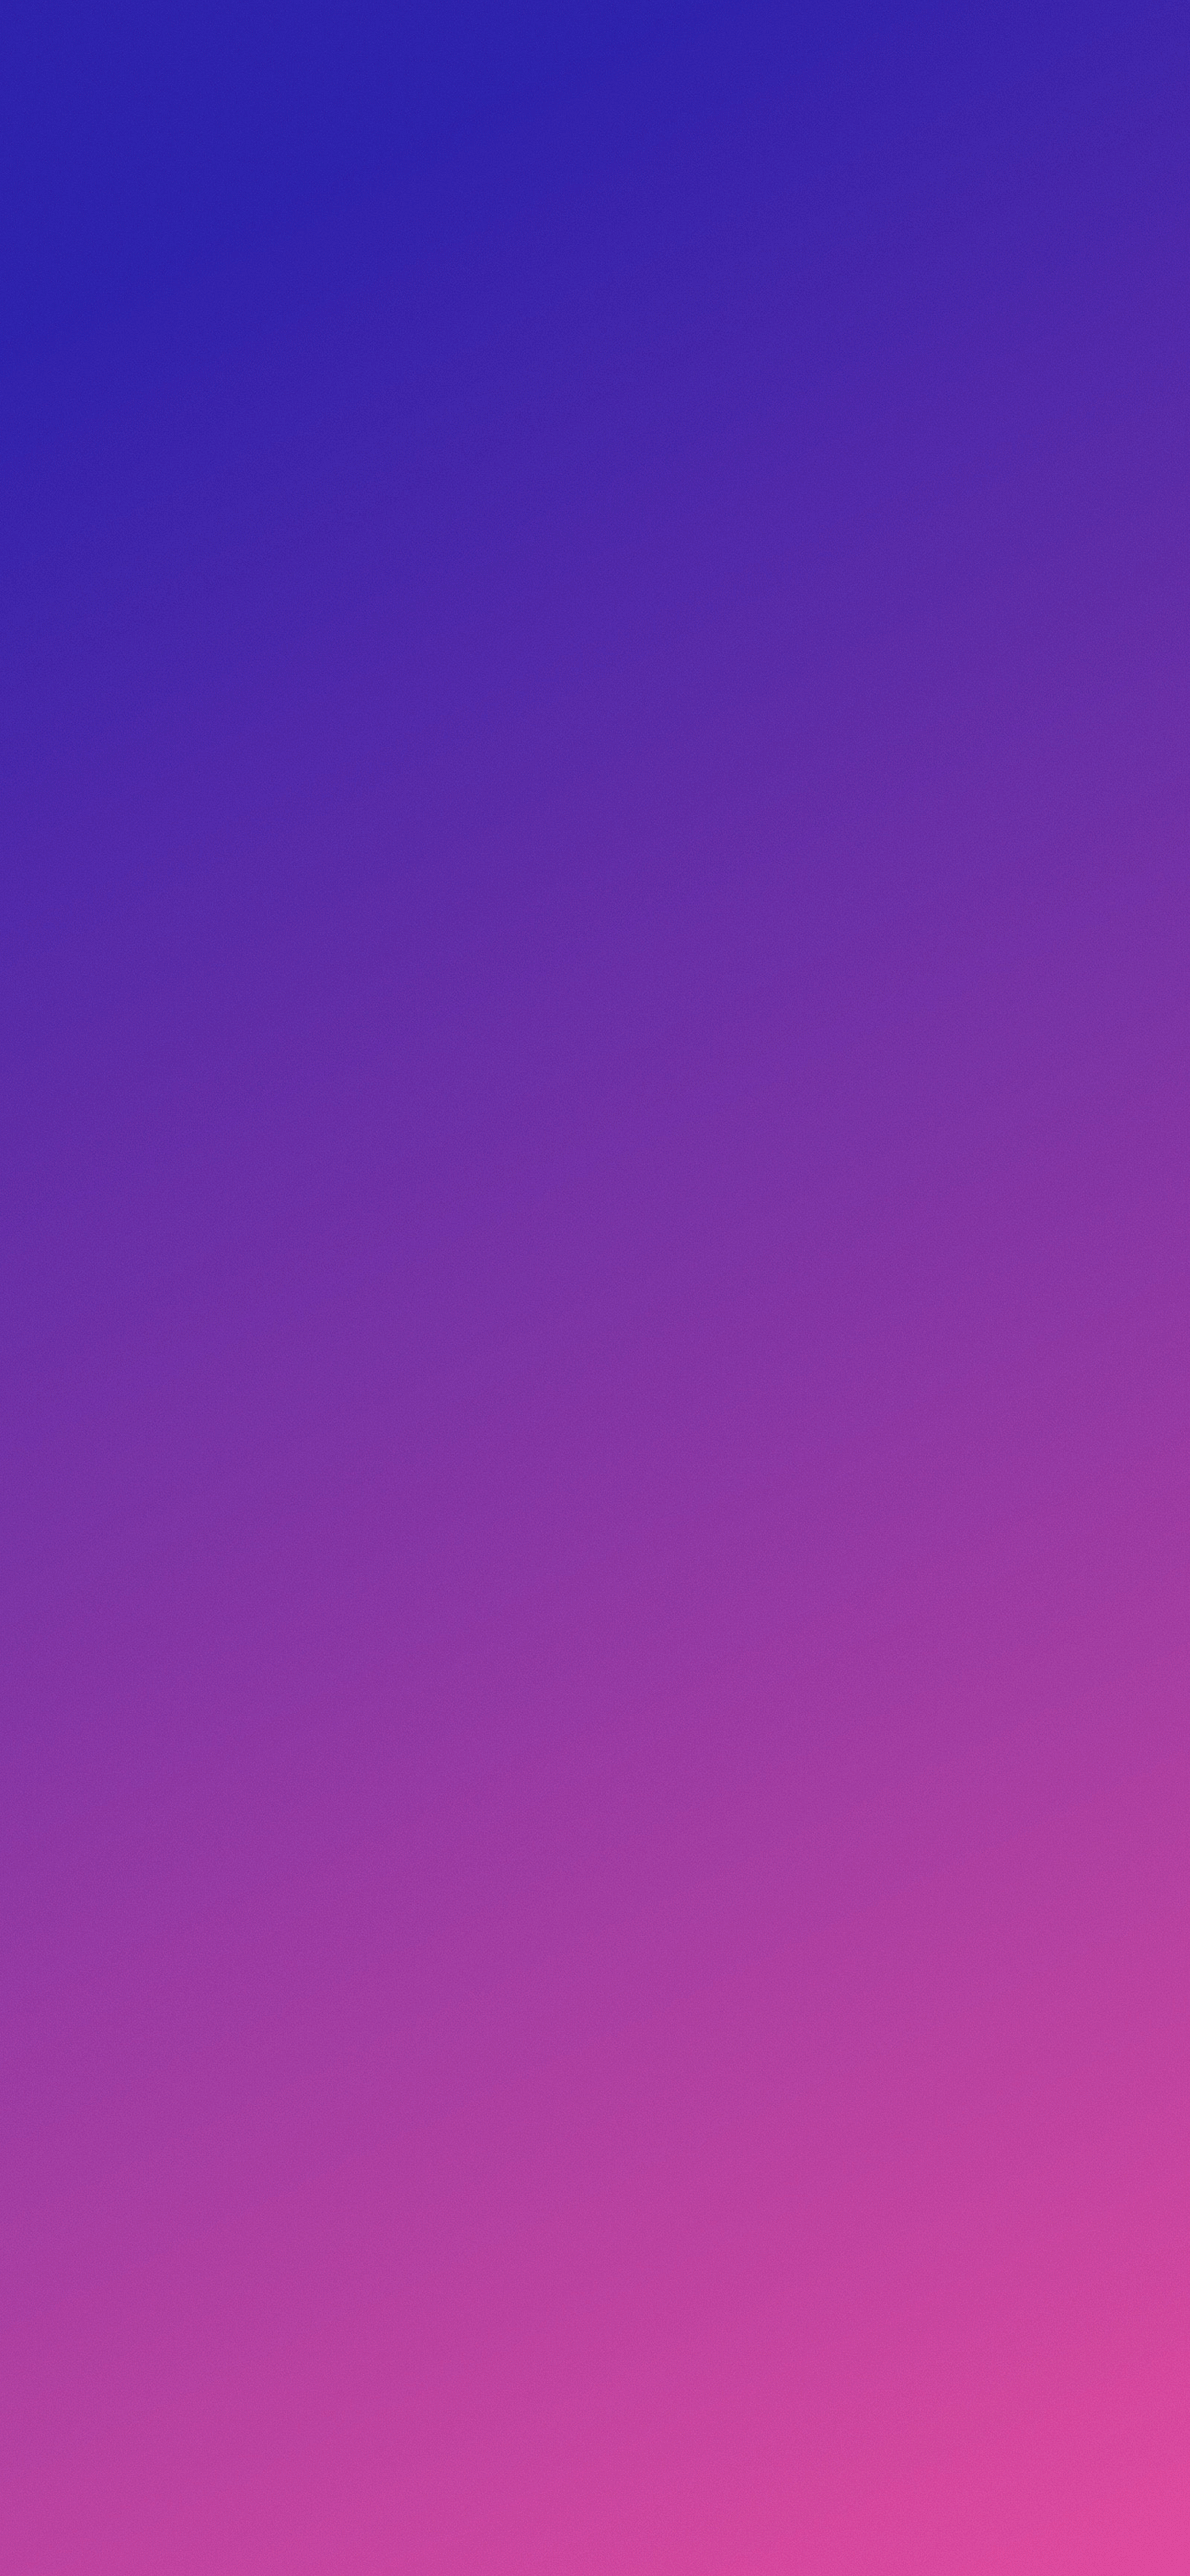 iPhone wallpapers gradient dark blue purple Fonds d'écran iPhone du 21/06/2019